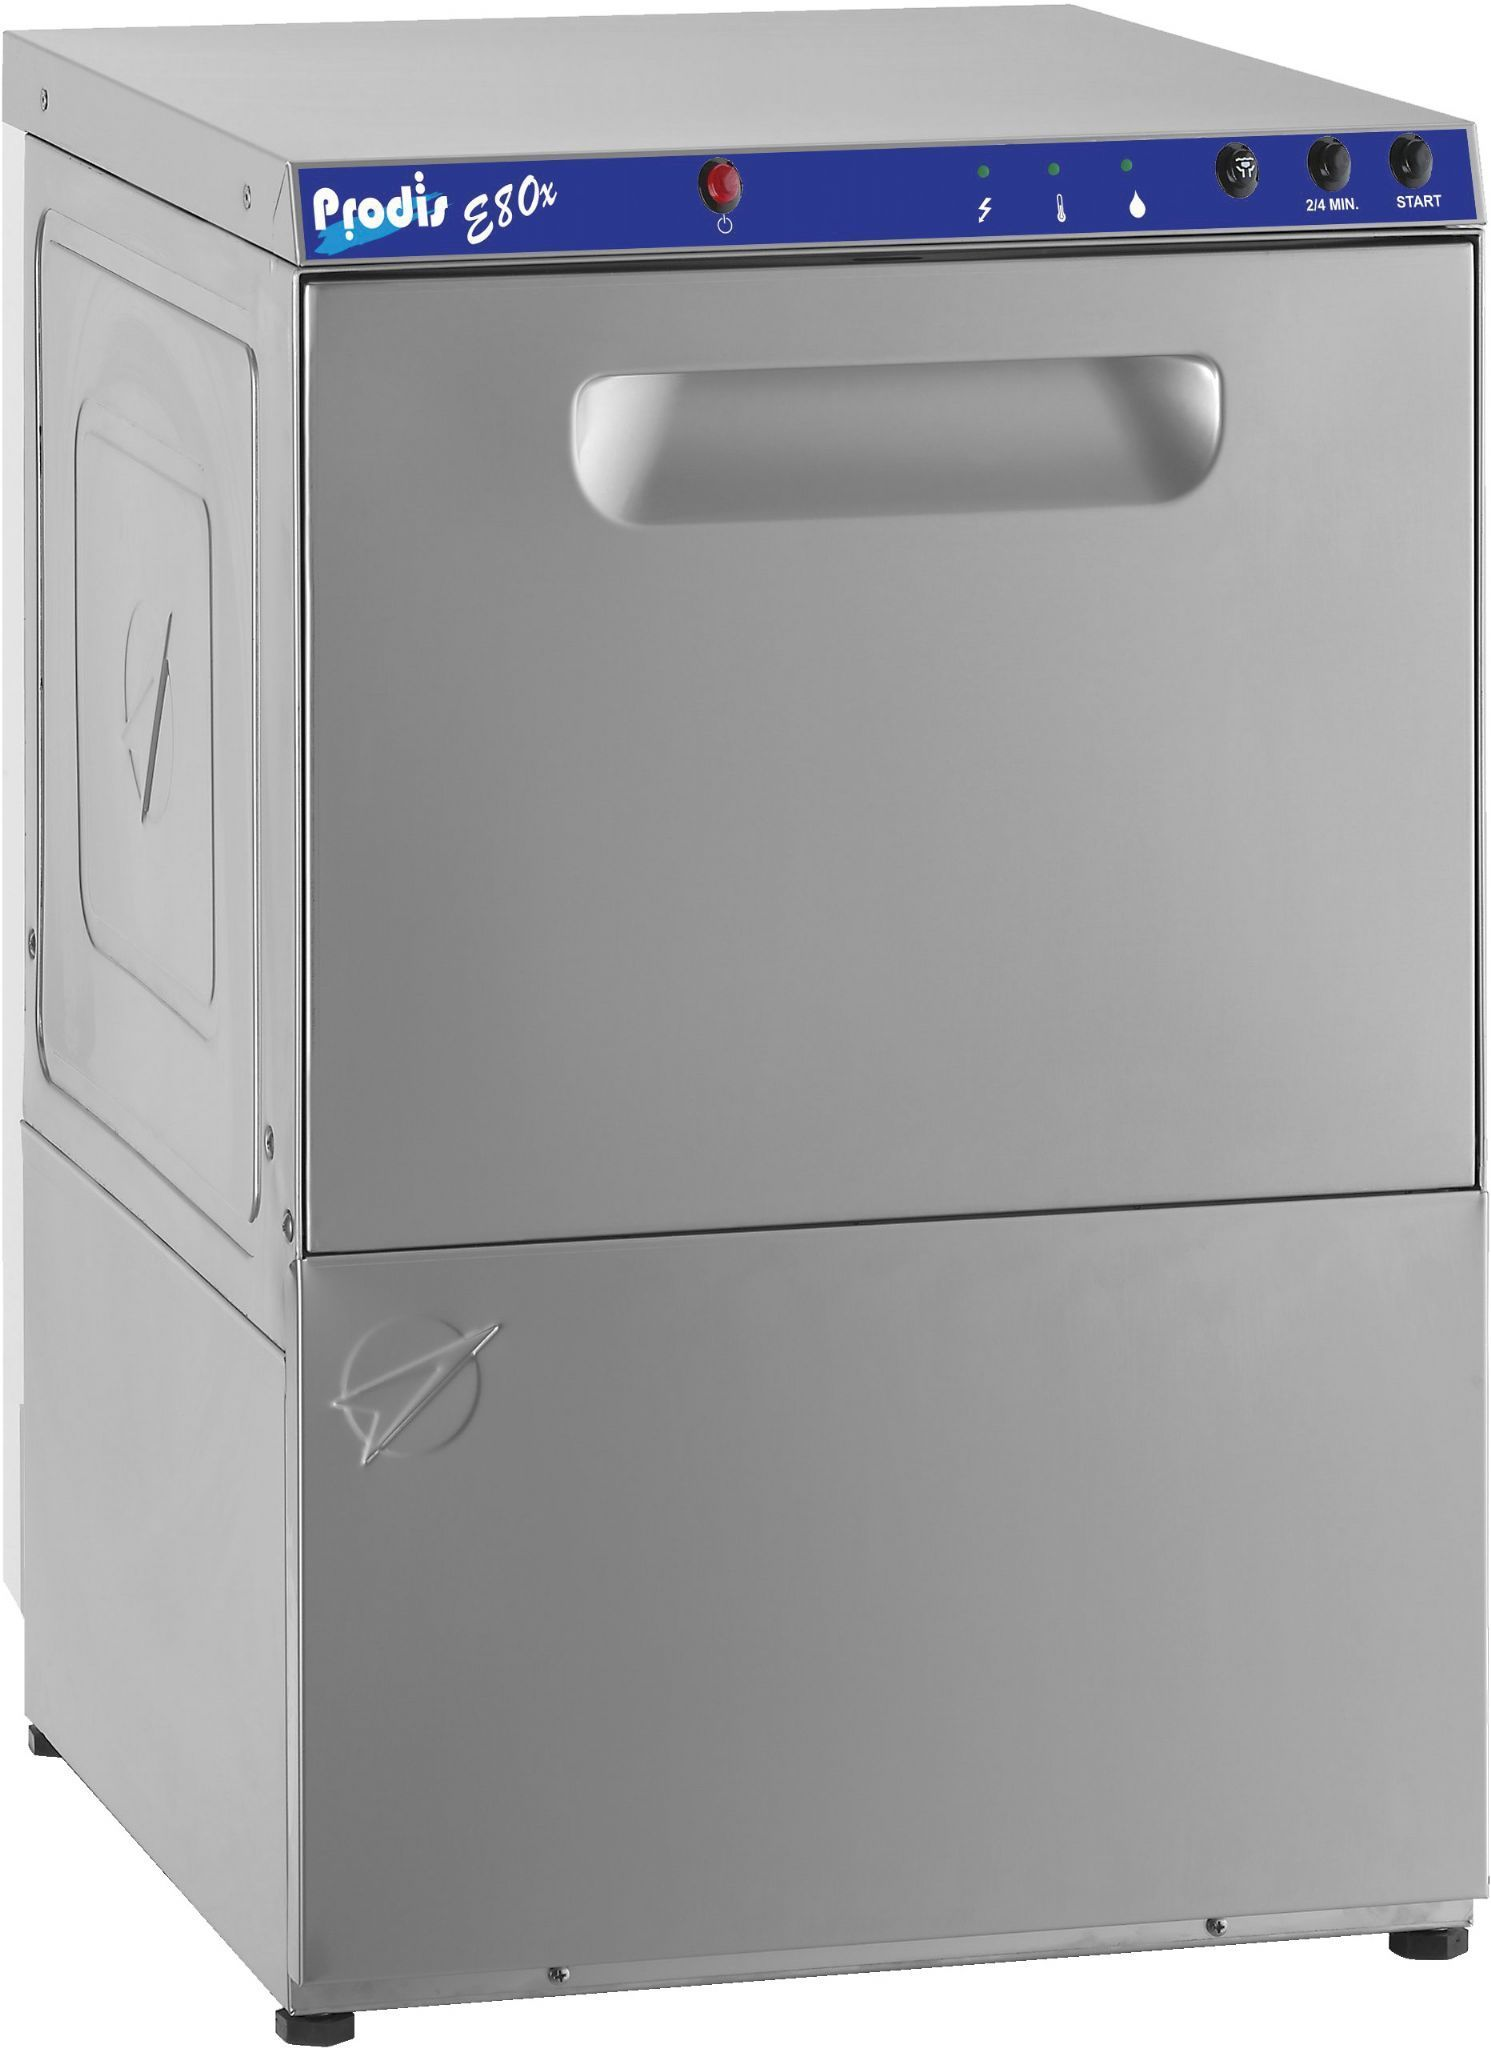 Prodis E80XD 500mm basket gravity drain dishwasher